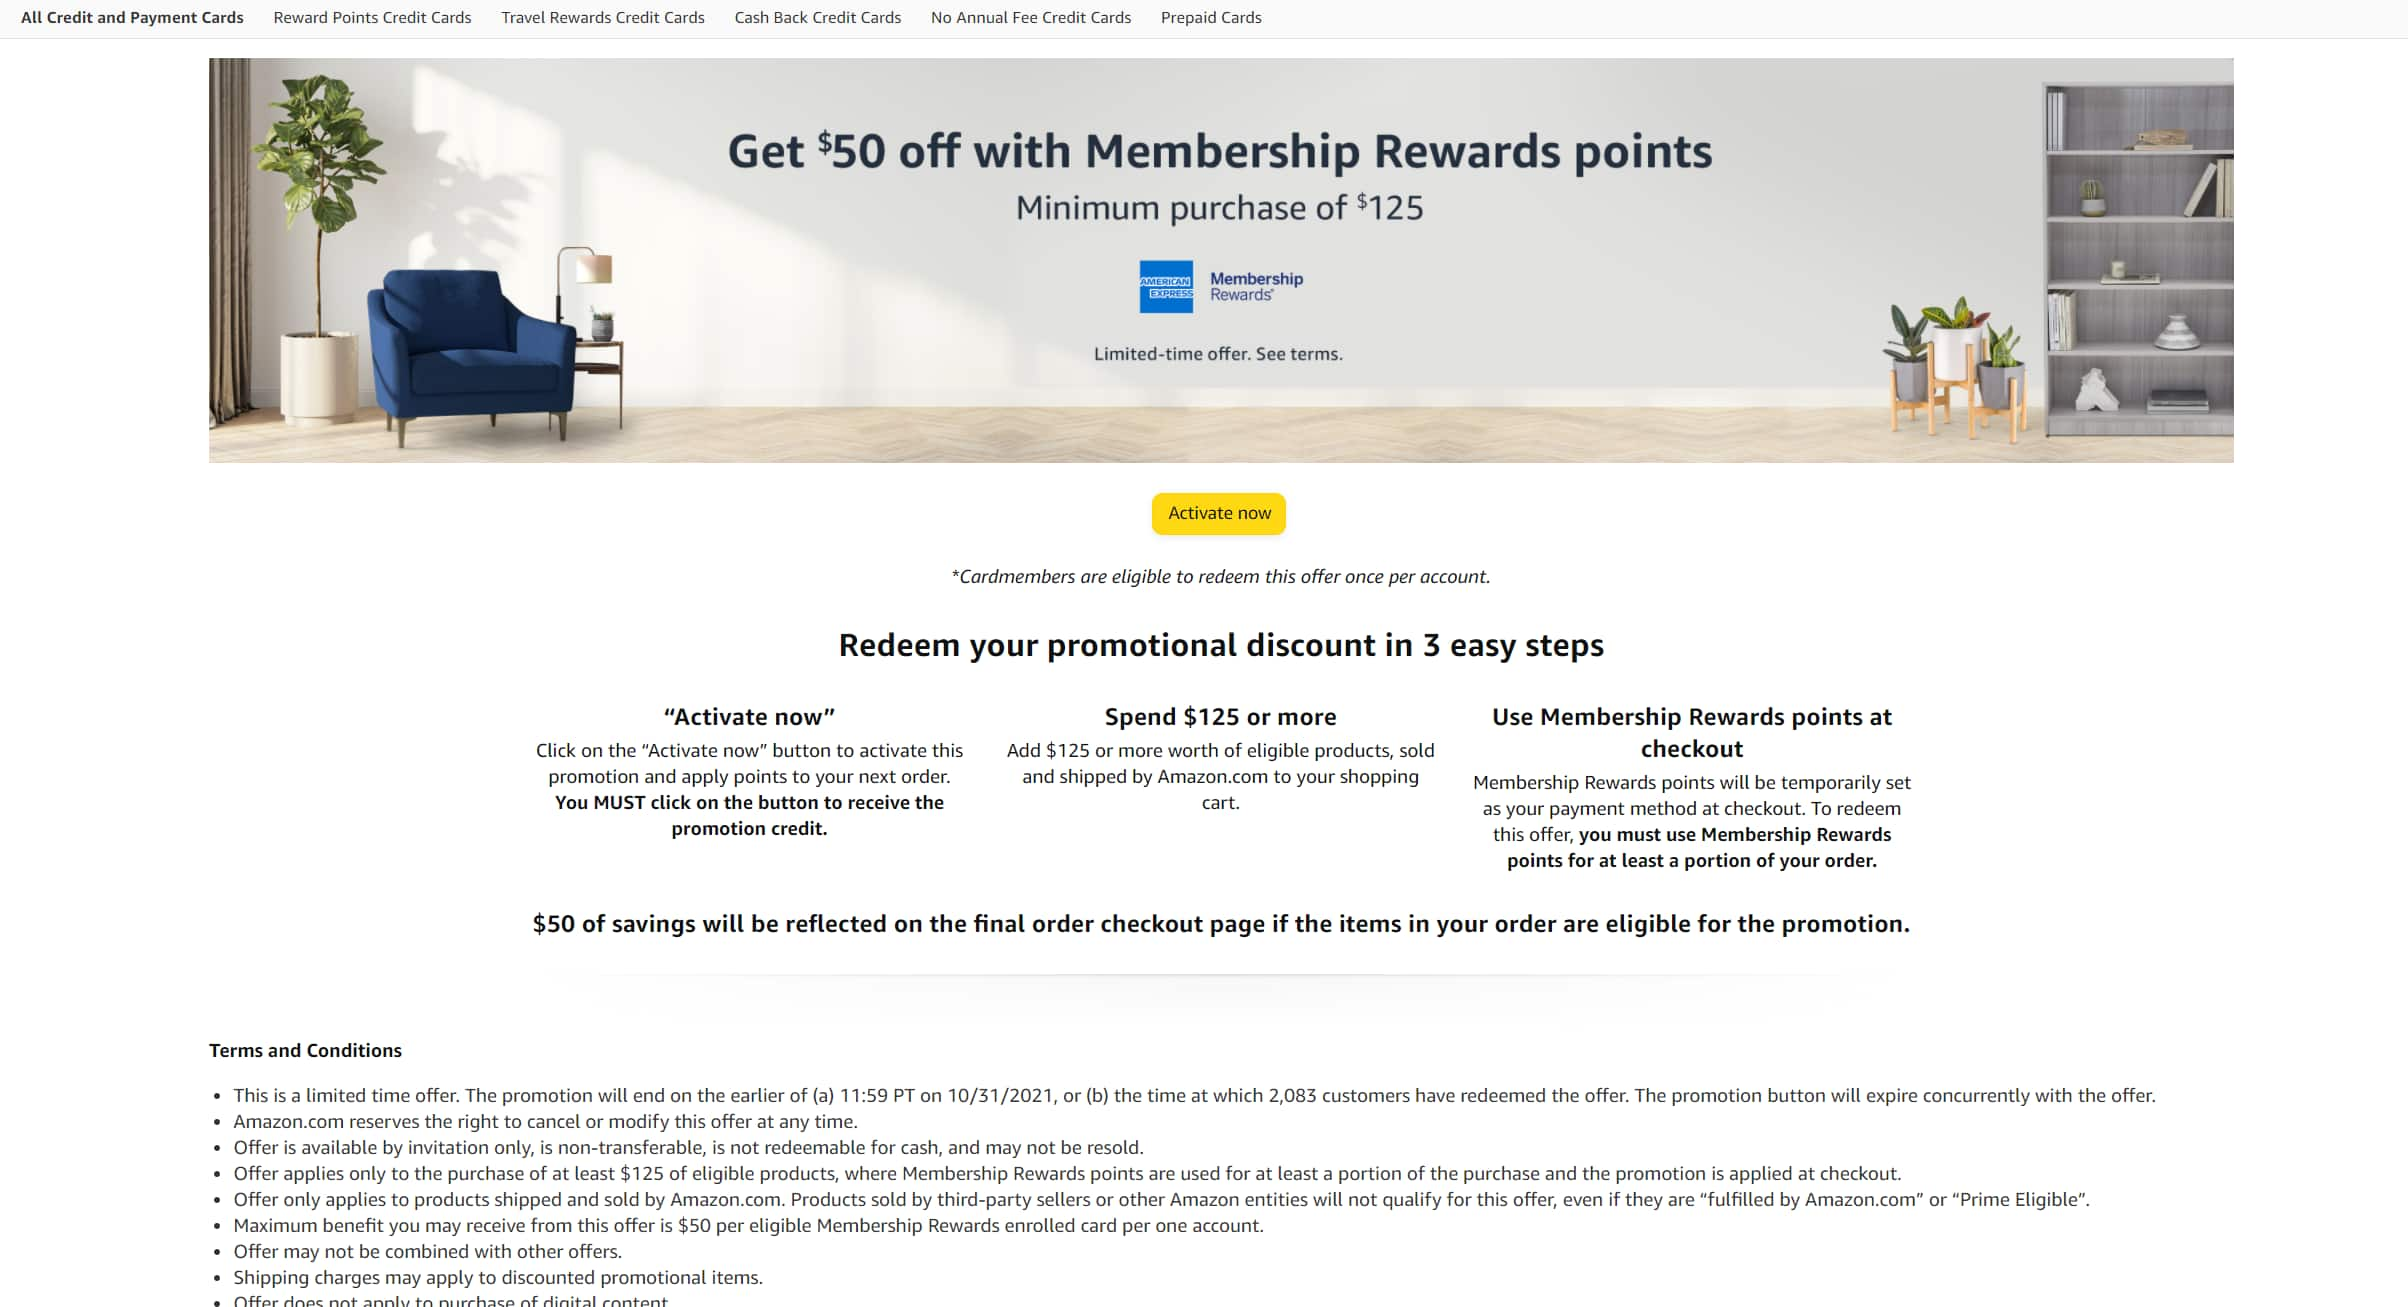 Amazon - Use  AMEX MR Point to receive $50 off $125 purchase (New Link) YMMV